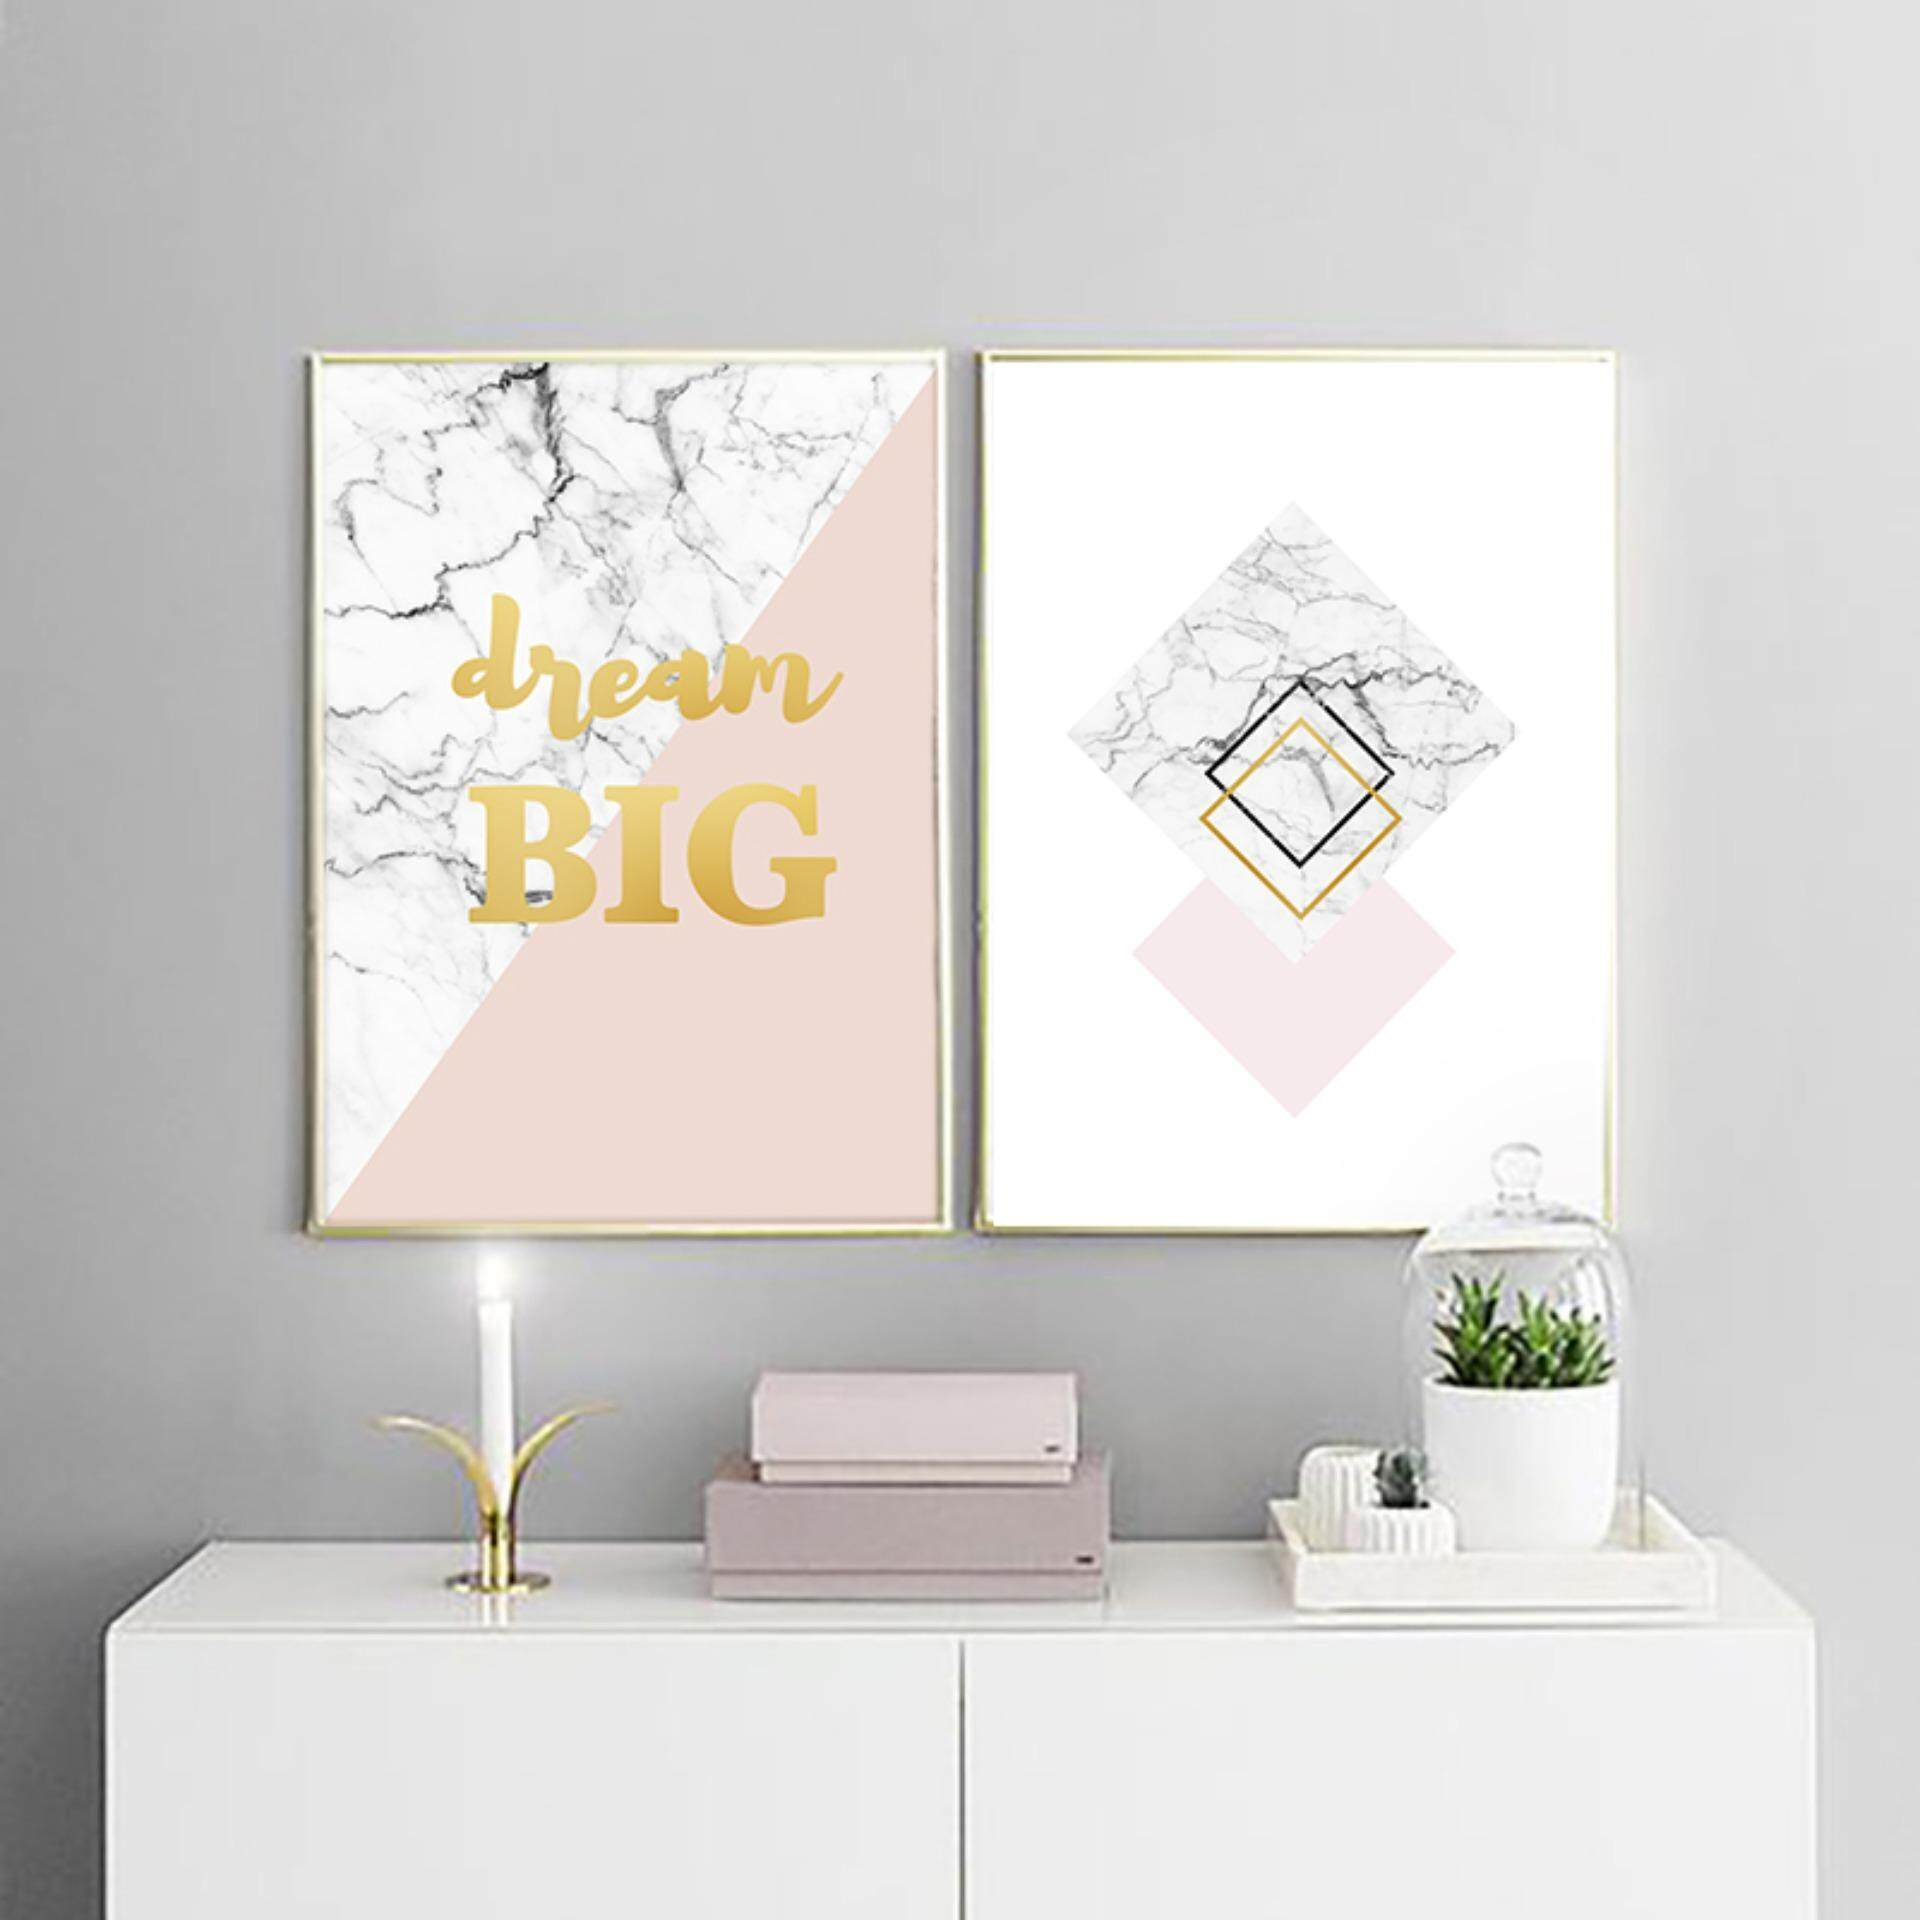 2 Pieces 30X42cm Unframed Marble Pattern Art Print Painting Poster - intl